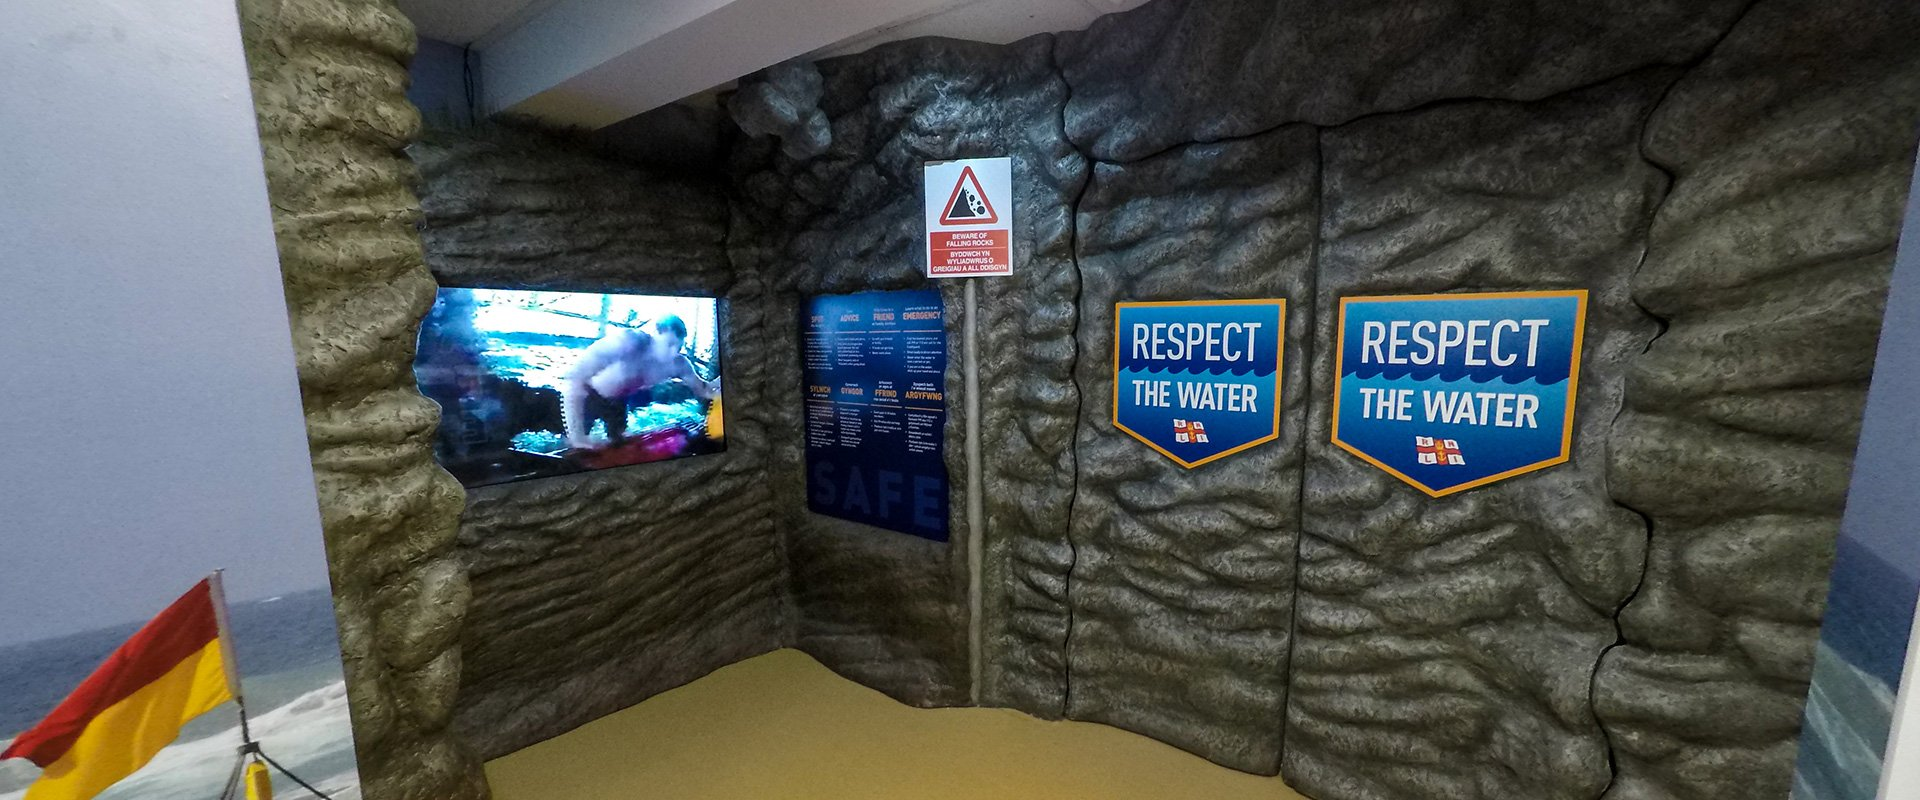 RNLI Barry Island Visitor Centre interactive rock cove with digital screen game